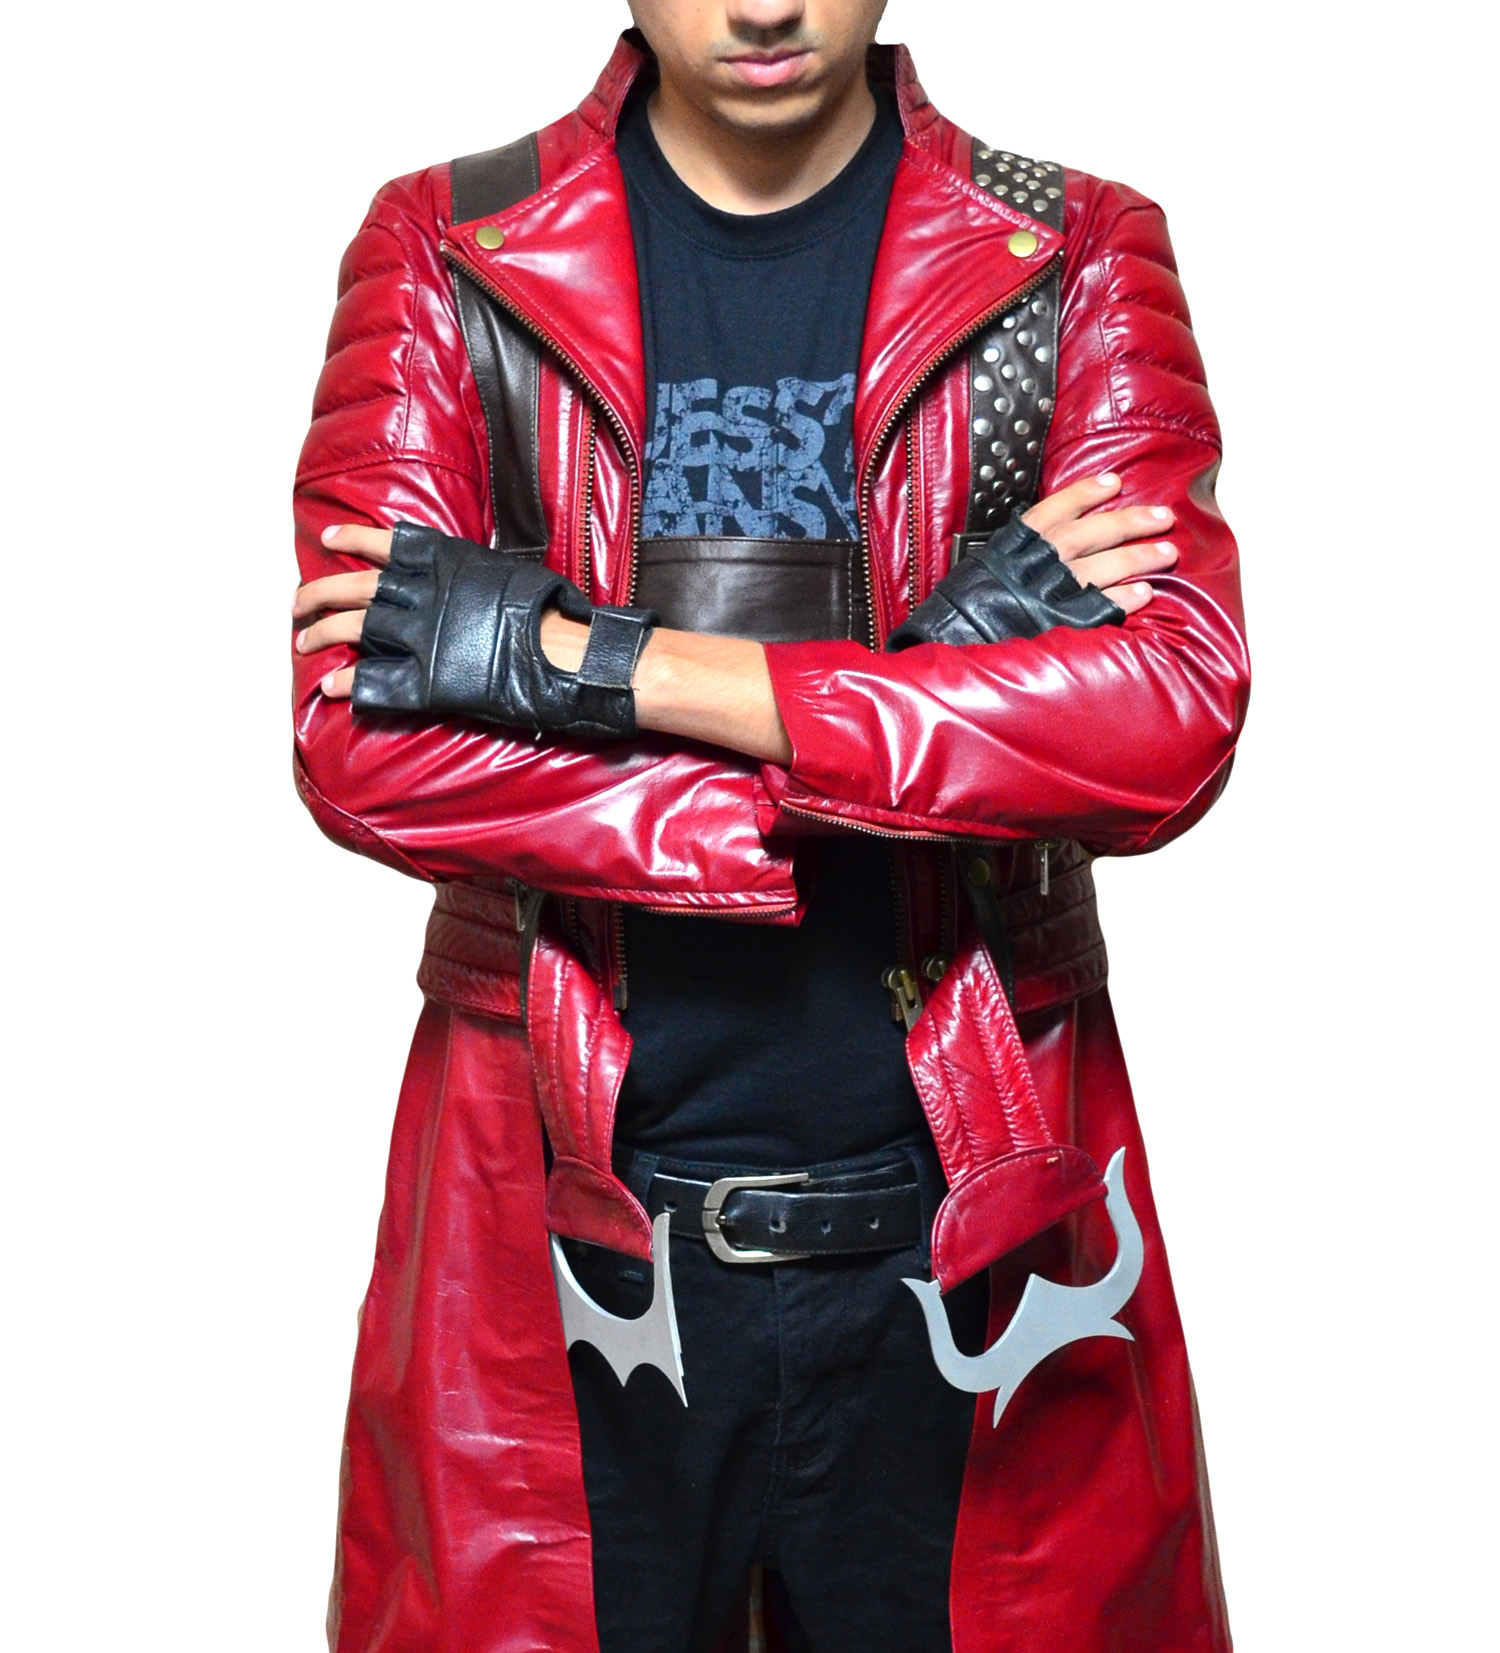 Devil May Cry DMC Dante Costume Cosplay